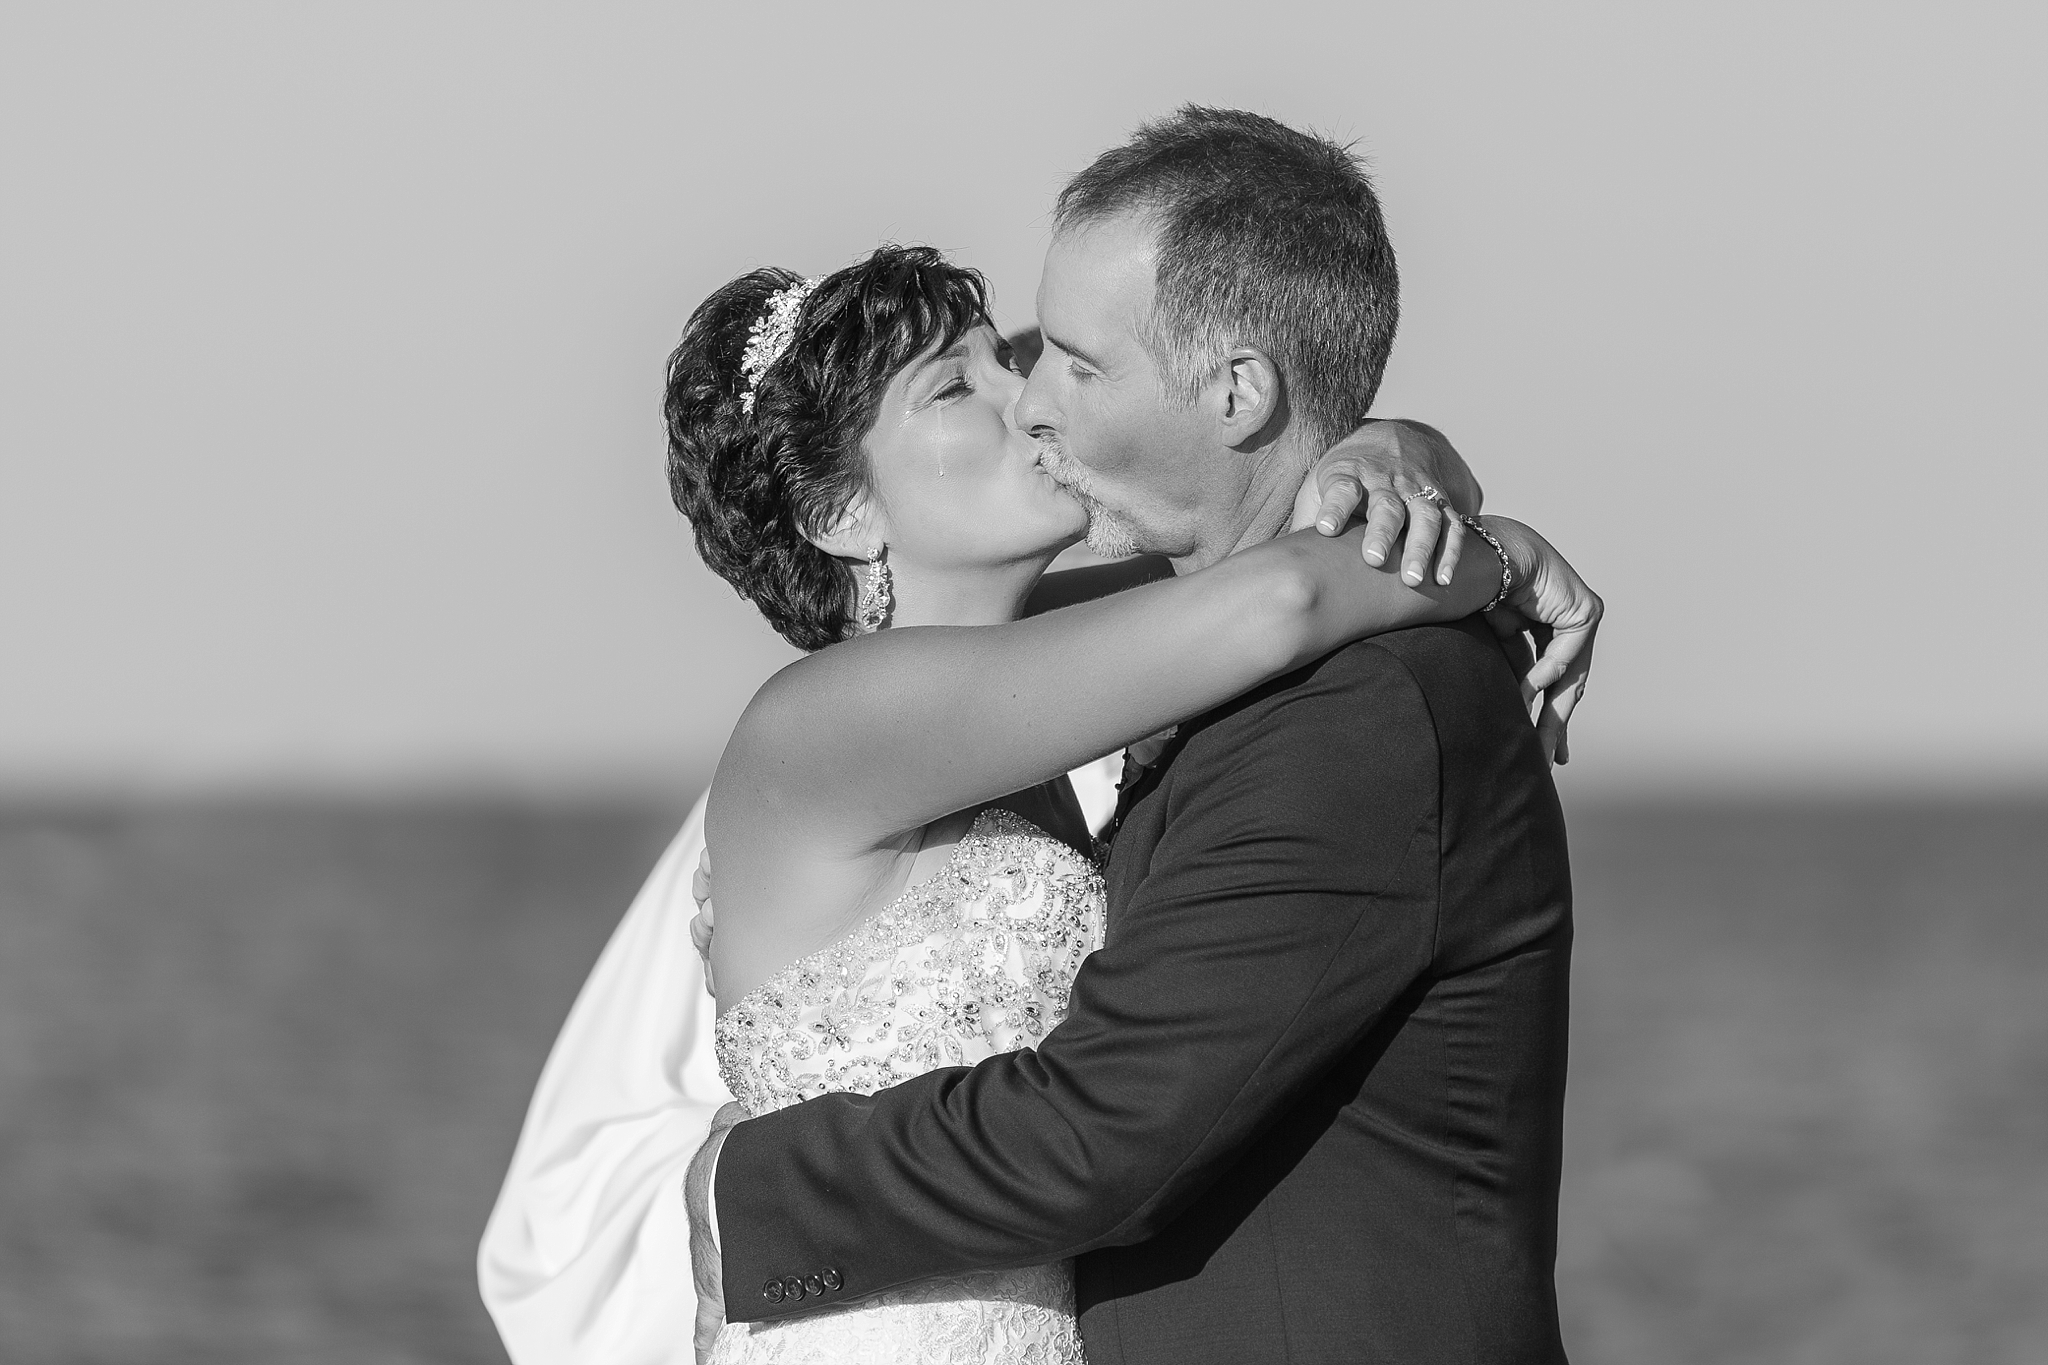 romantic-artful-candid-wedding-photos-in-detroit-lansing-ann-arbor-northern-michigan-and-chicago-by-courtney-carolyn-photography_0061.jpg